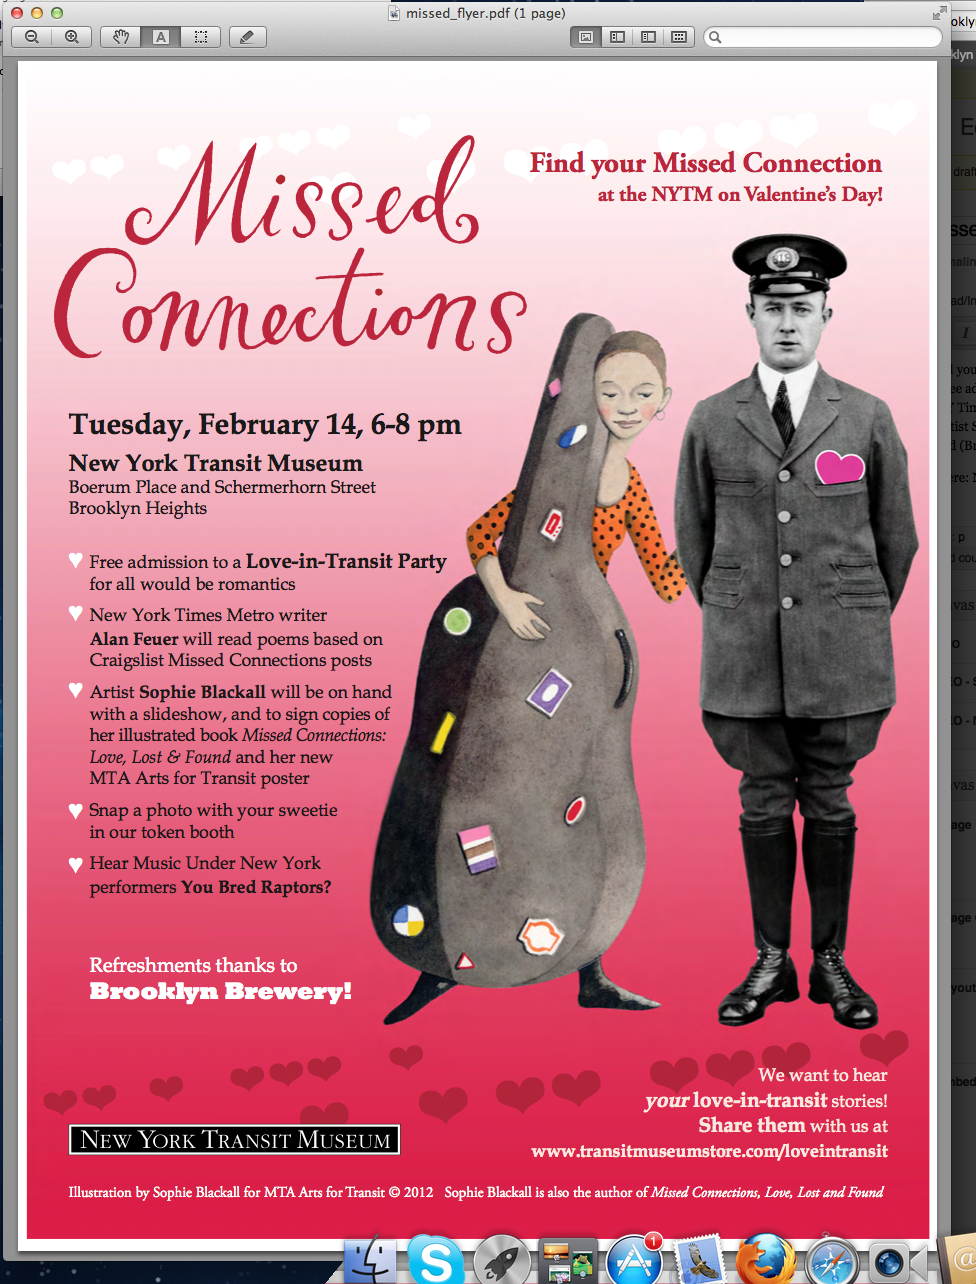 Missed Connections at NY Transit Museum on Valentine's Day ...